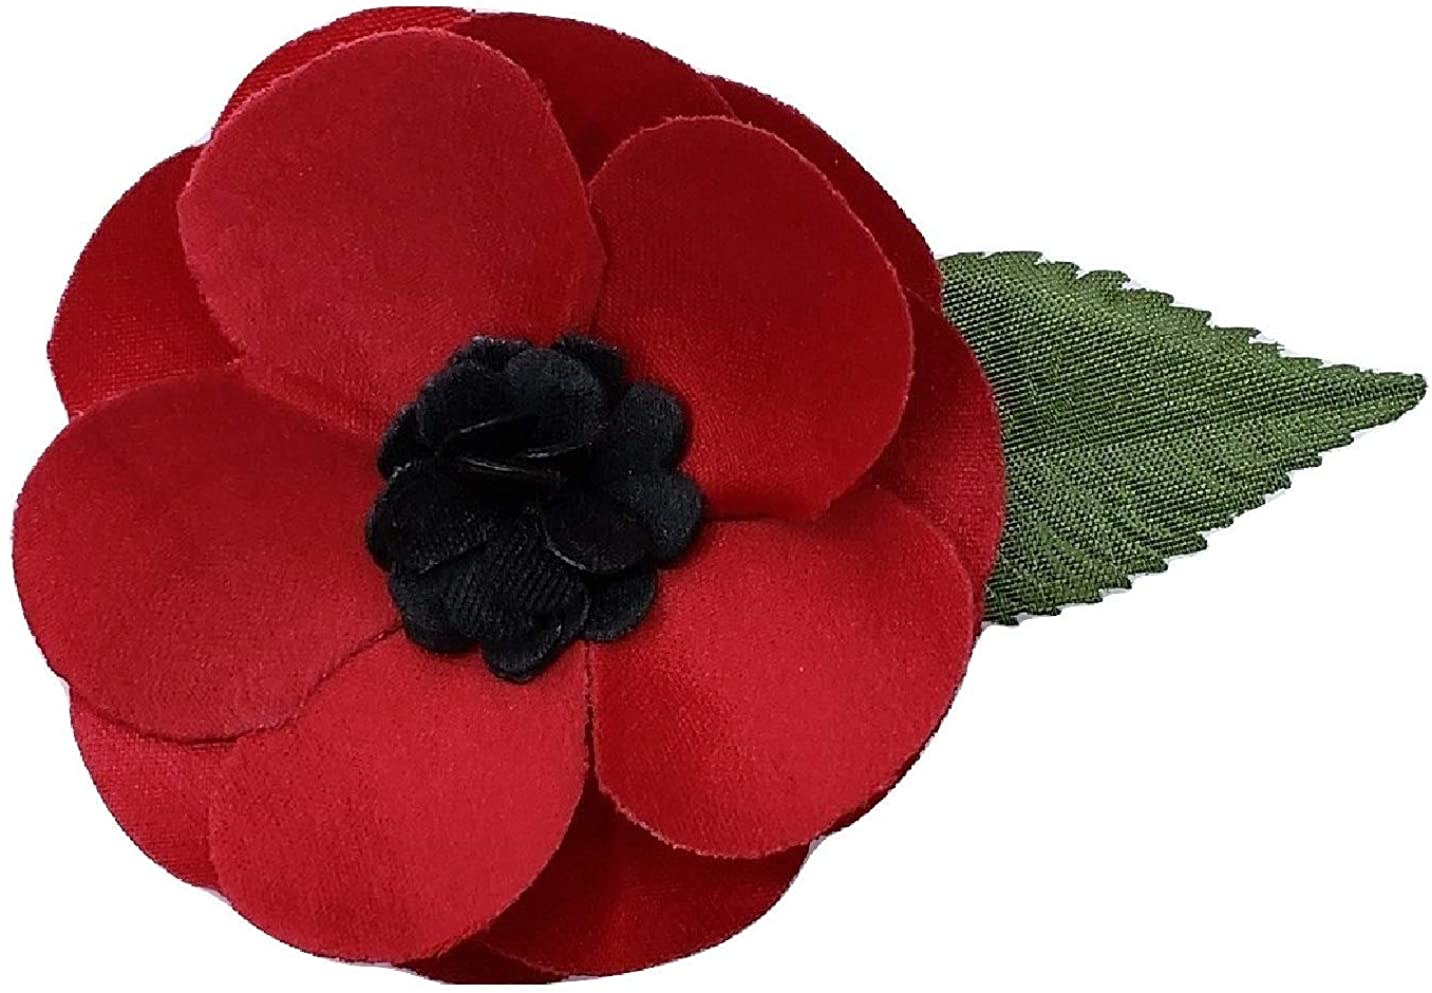 1x Girls Hair Bow Accessories remembrance day poppies poppy lest we forget